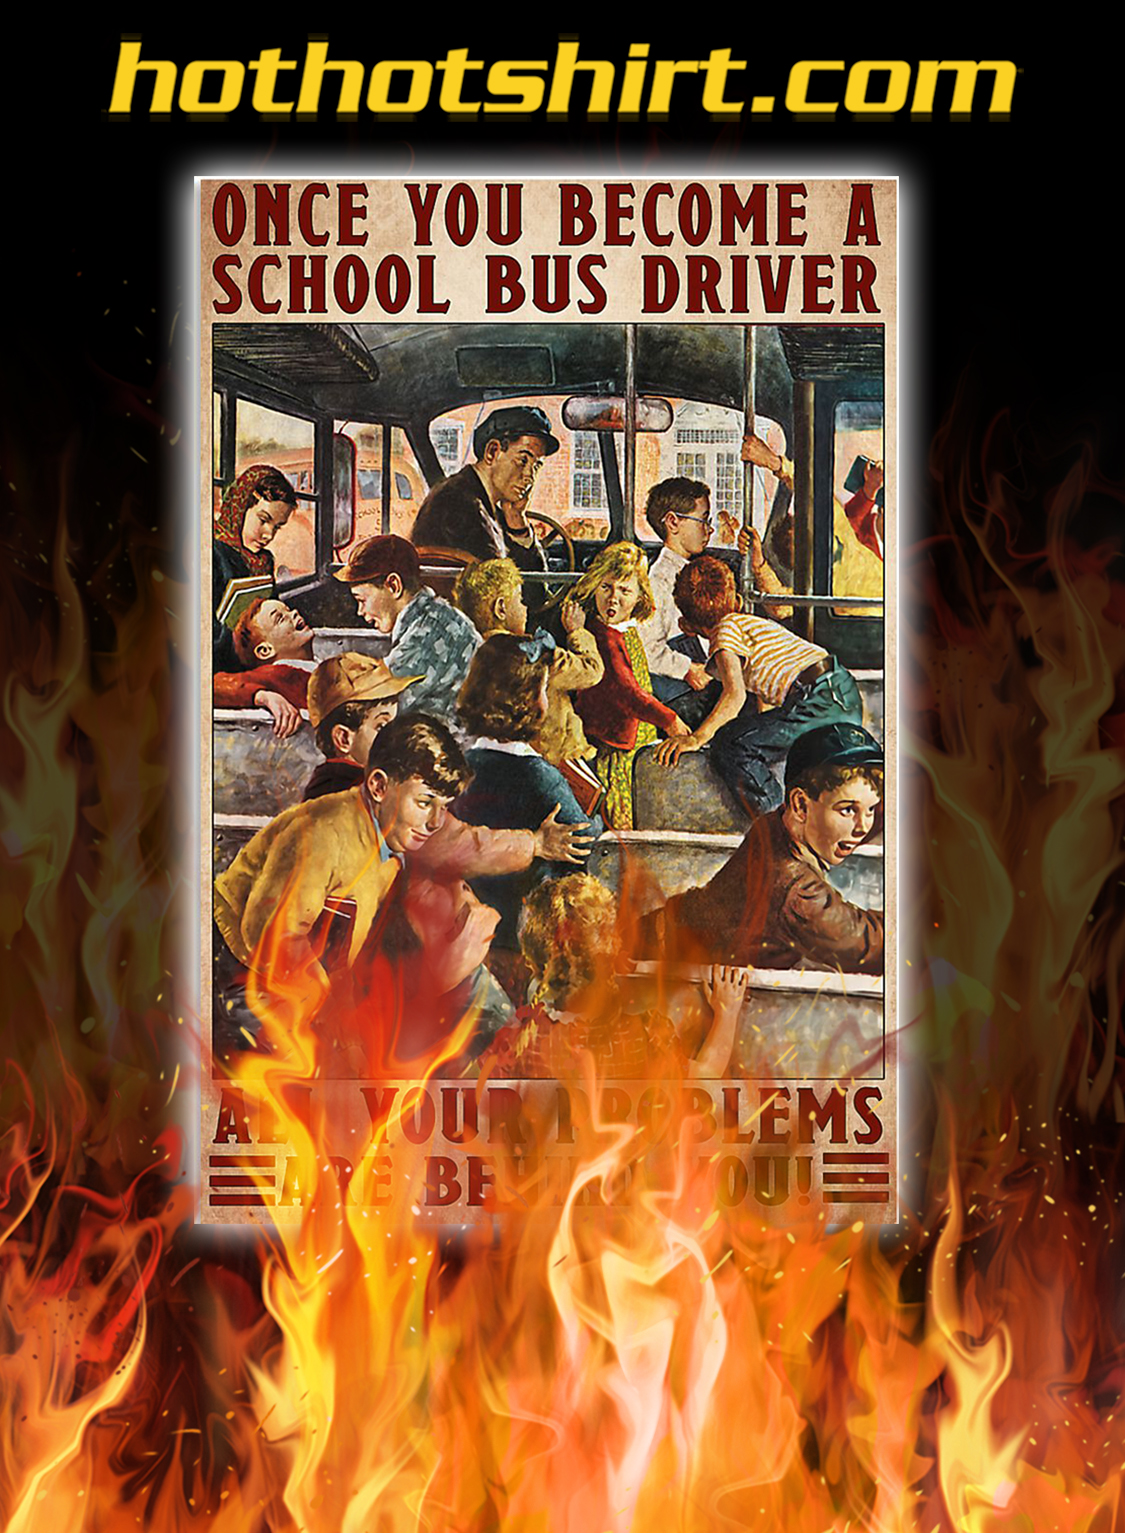 Once you become a school bus driver all your problems are behind you poster - A2